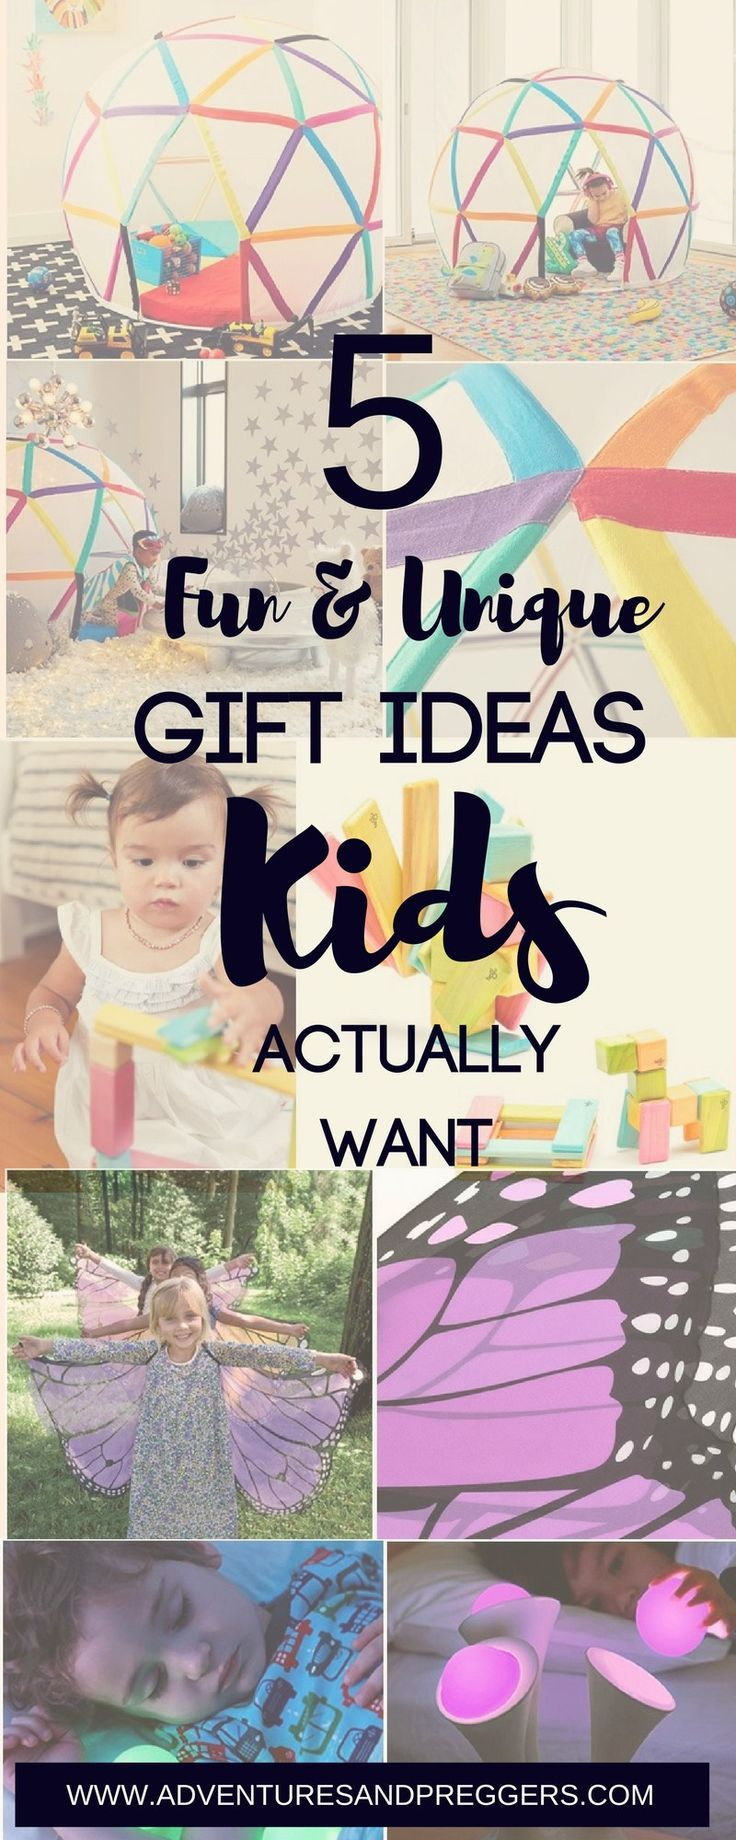 Unique Gift Ideas Kids Actually Want | Kind, Kinder und Einzigartige ...